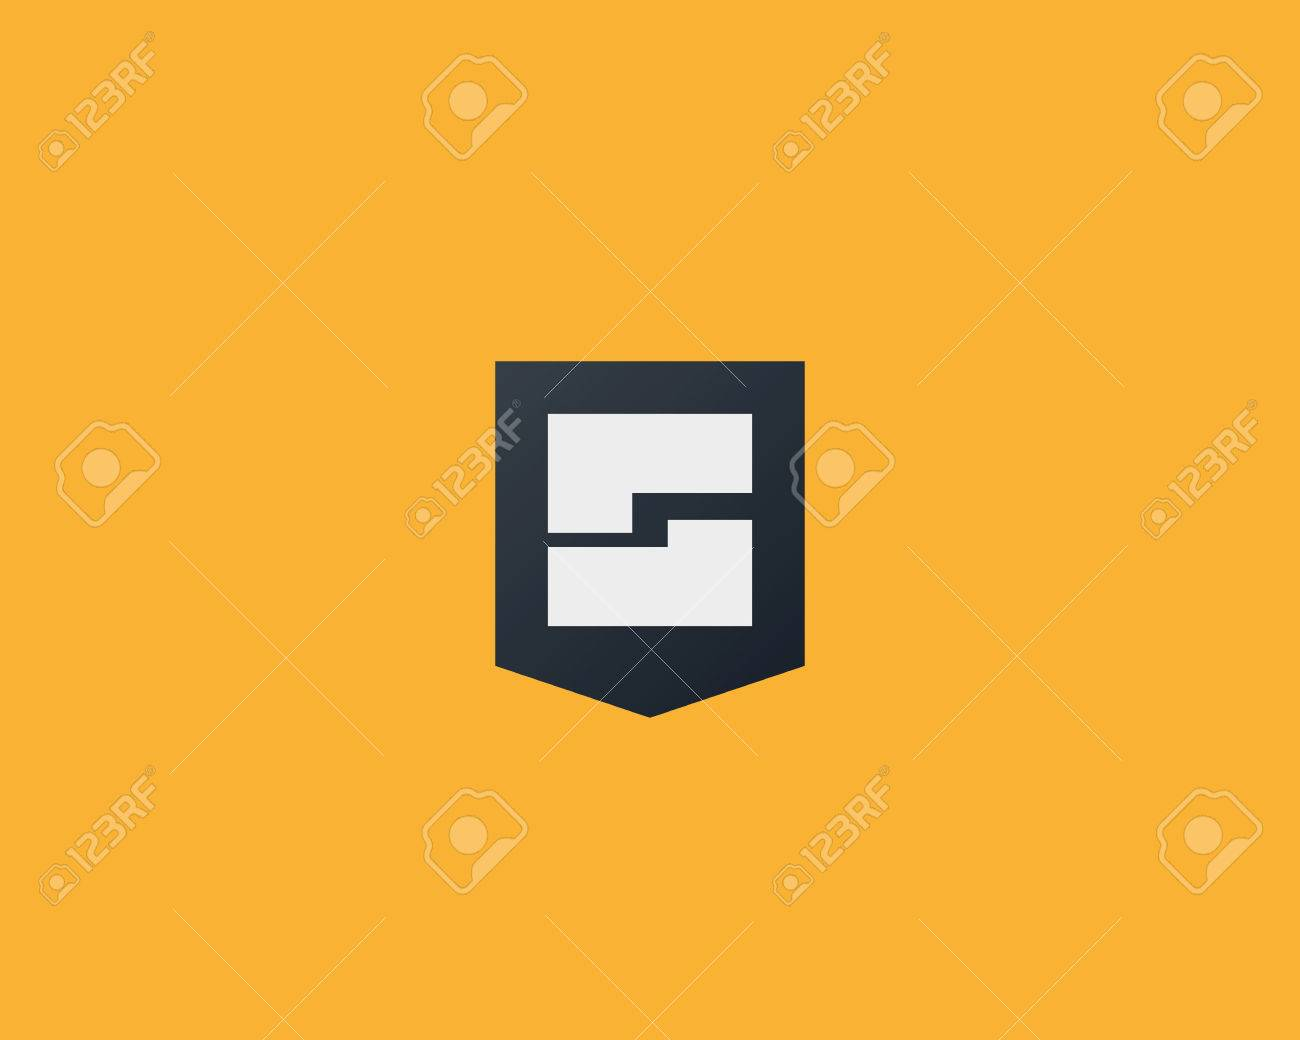 Abstract Letter G Shield Design Template Royalty Free Cliparts ...